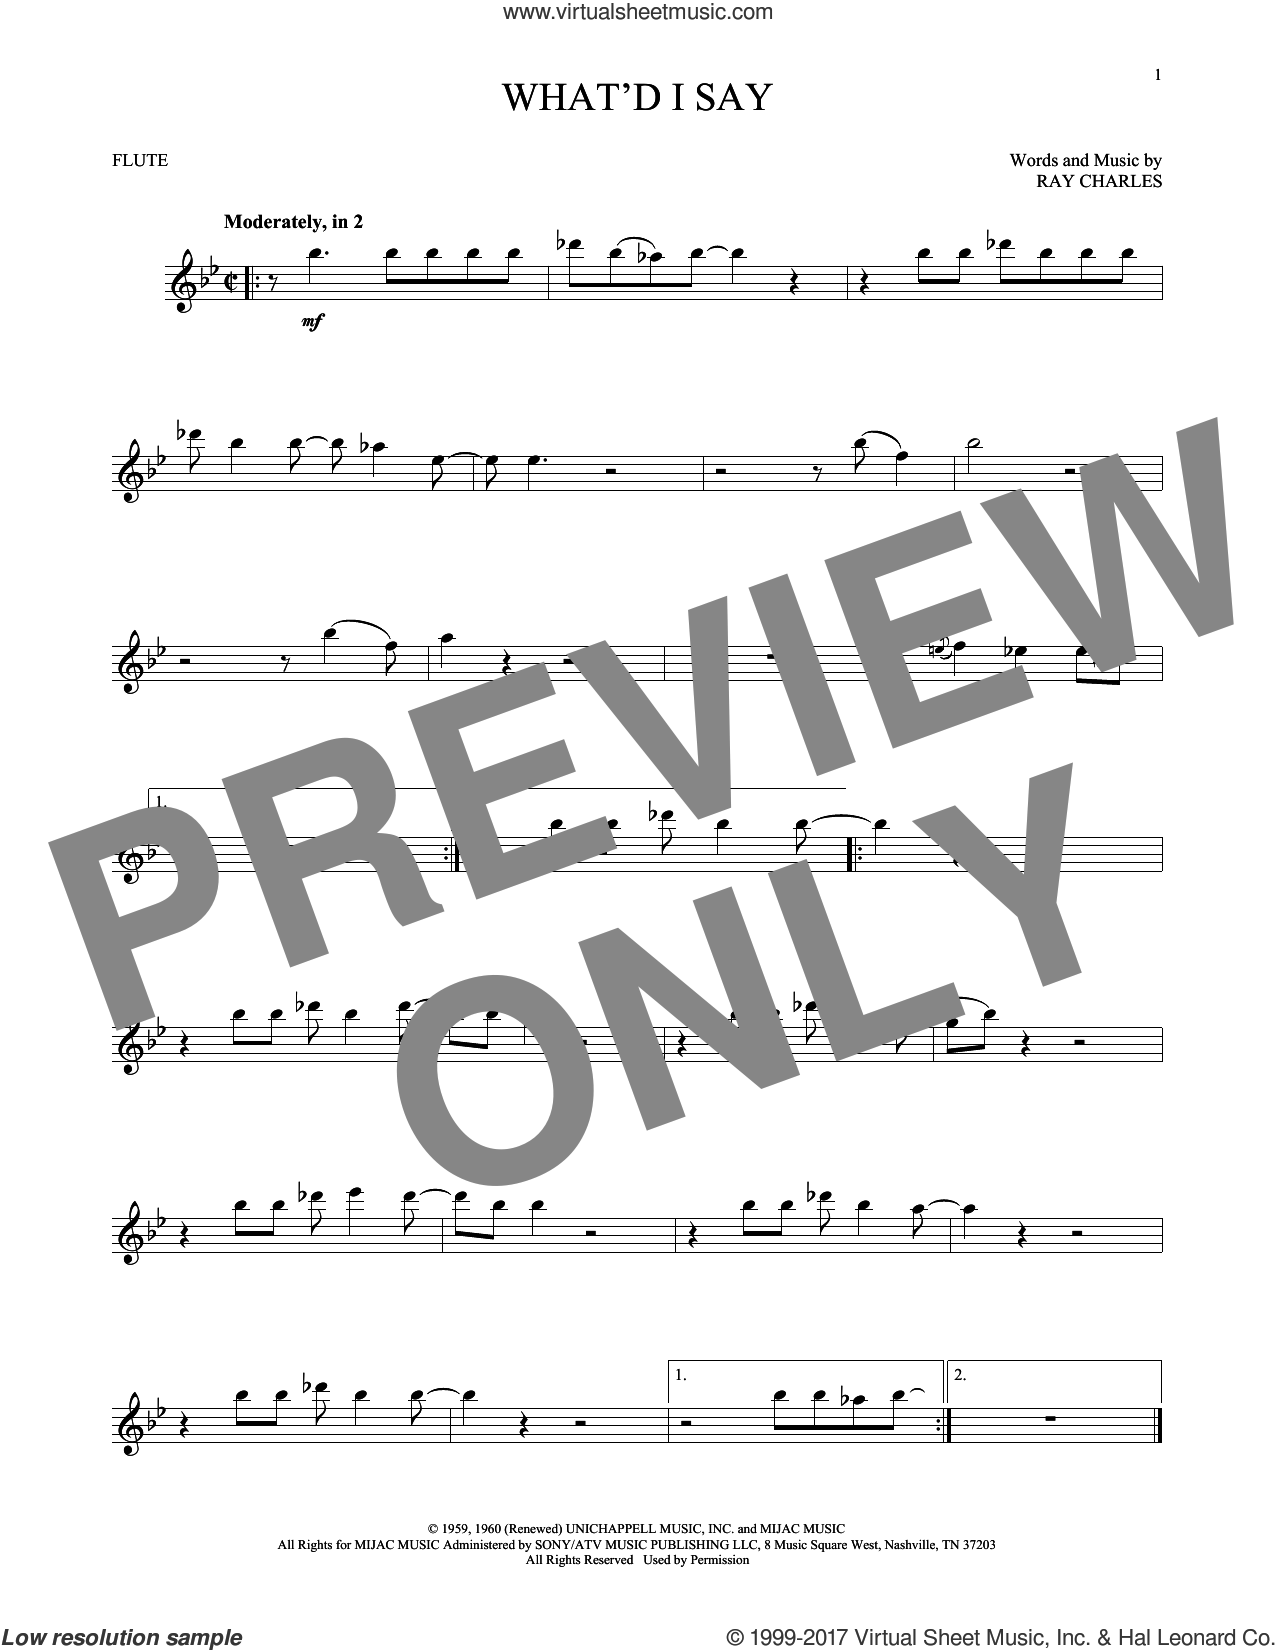 What'd I Say sheet music for flute solo by Ray Charles and Elvis Presley, intermediate skill level